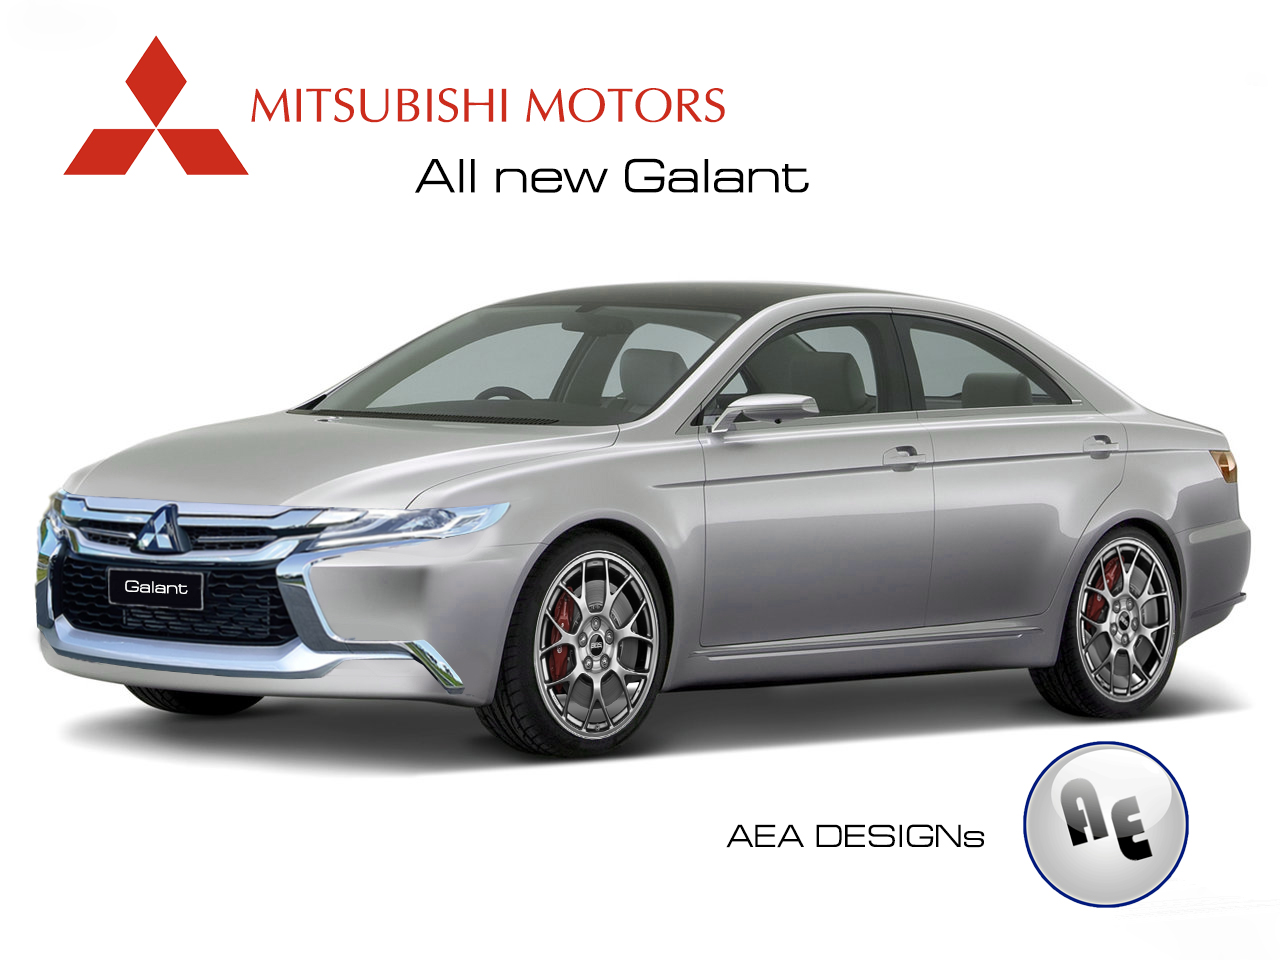 2018 Mitsubishi Galant | 2017 - 2018 Best Cars Reviews